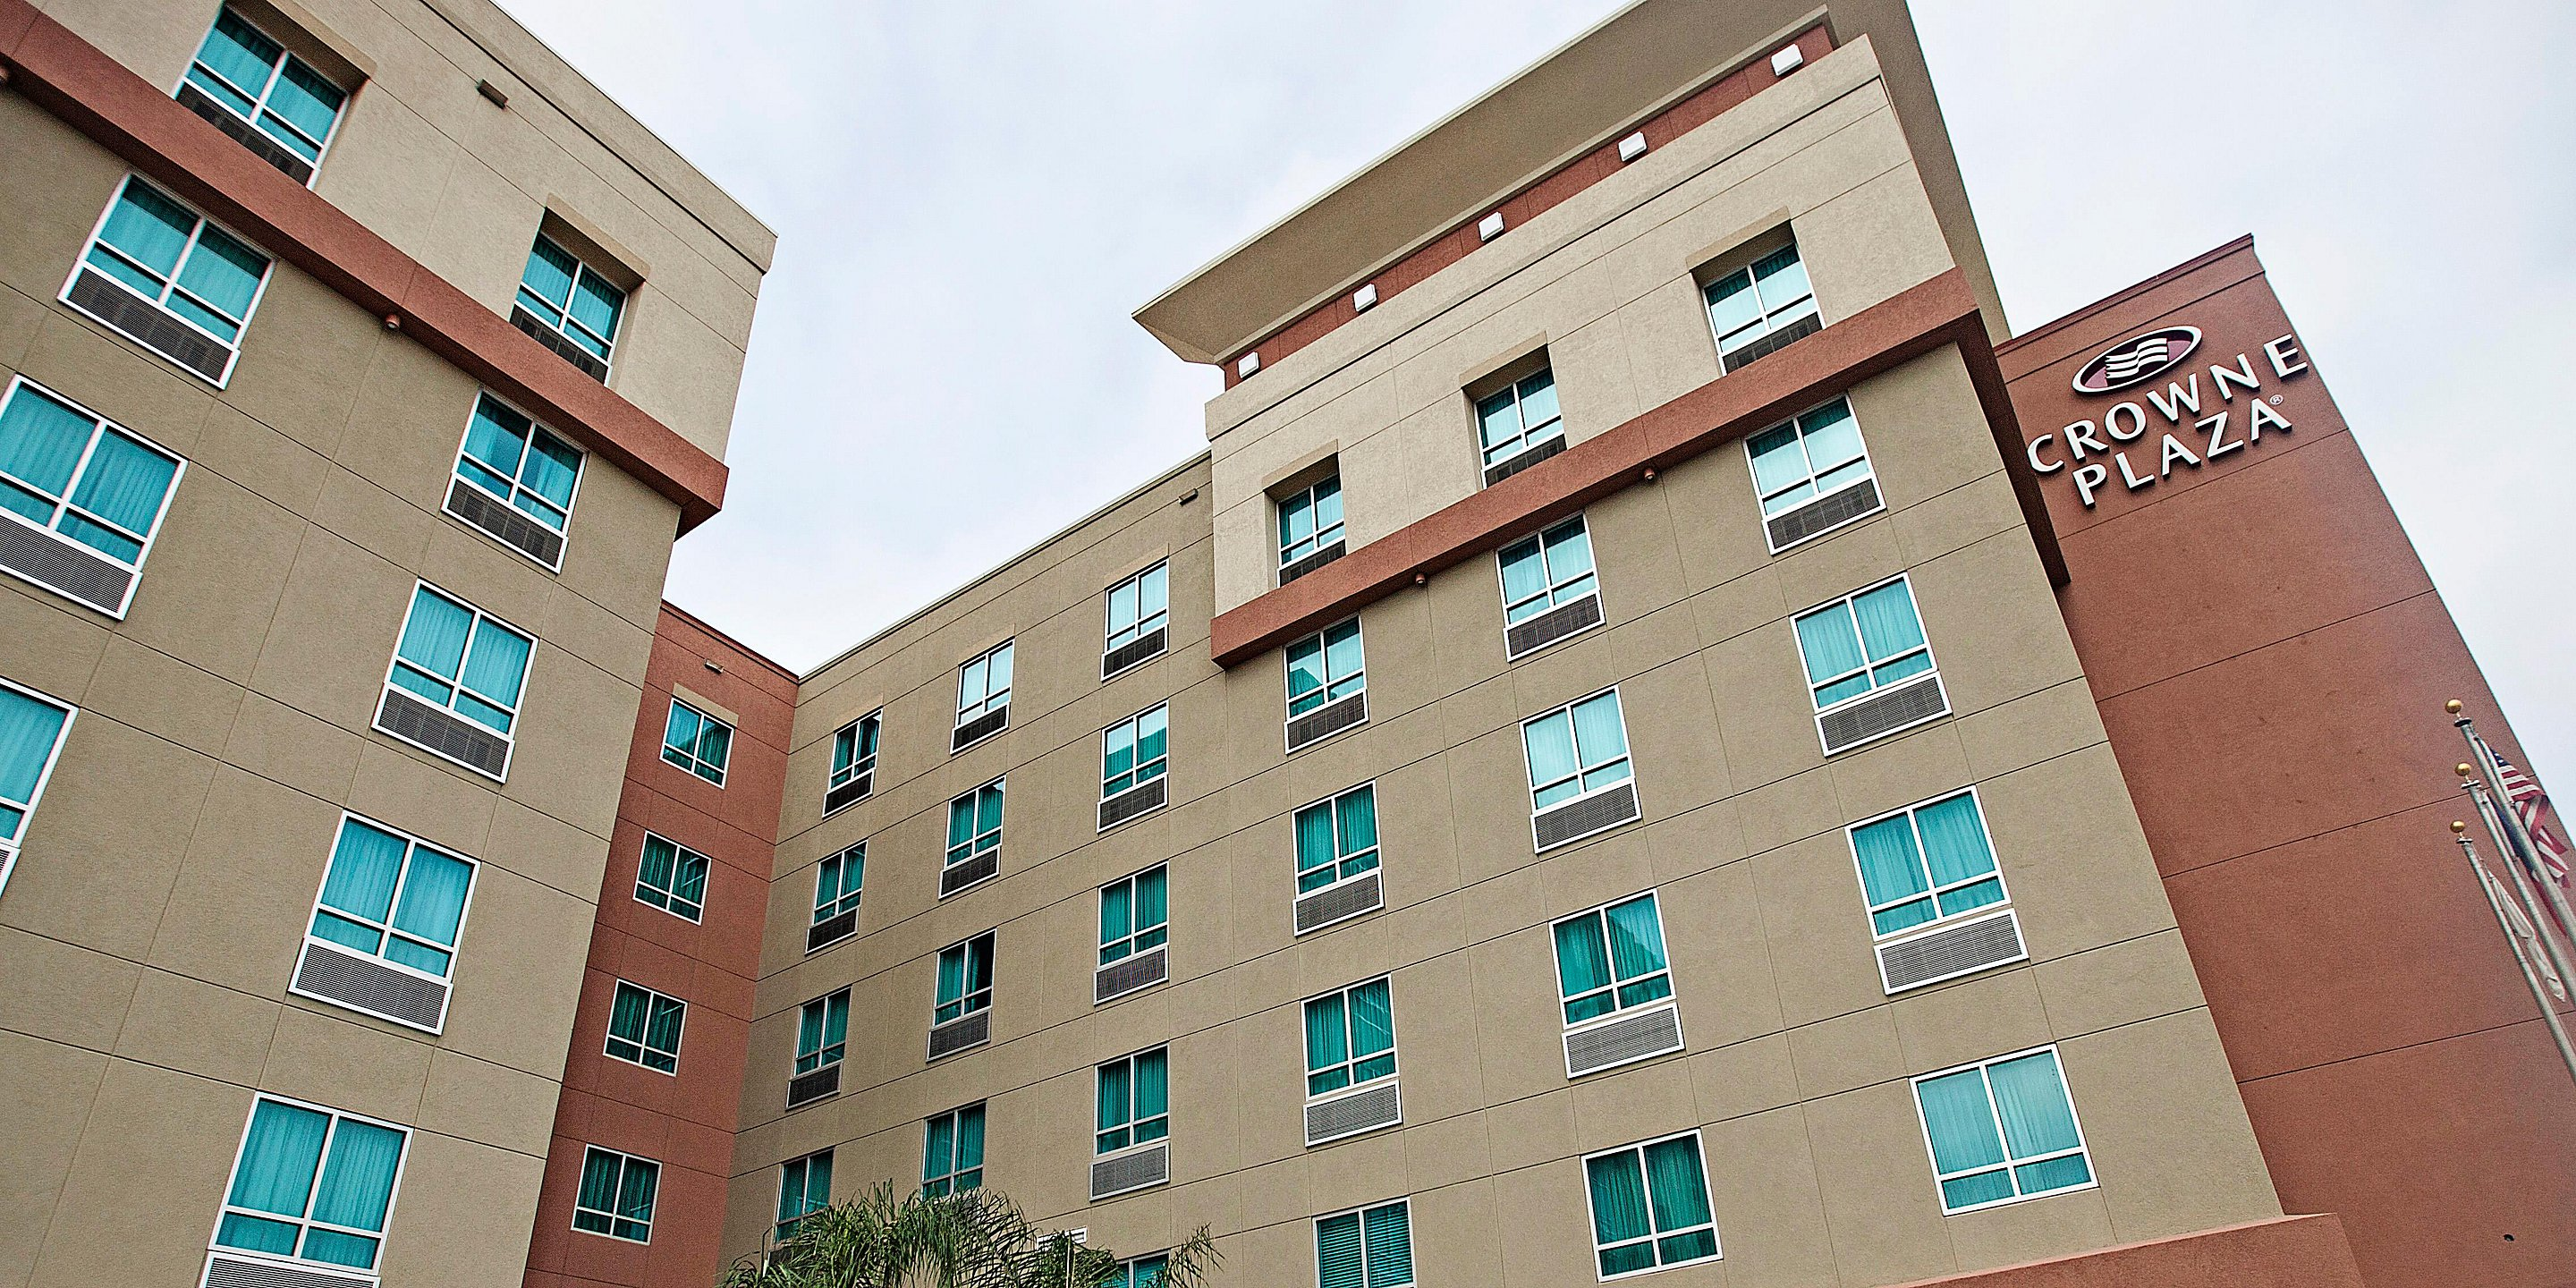 crowne-plaza-houston-3303804436-2x1